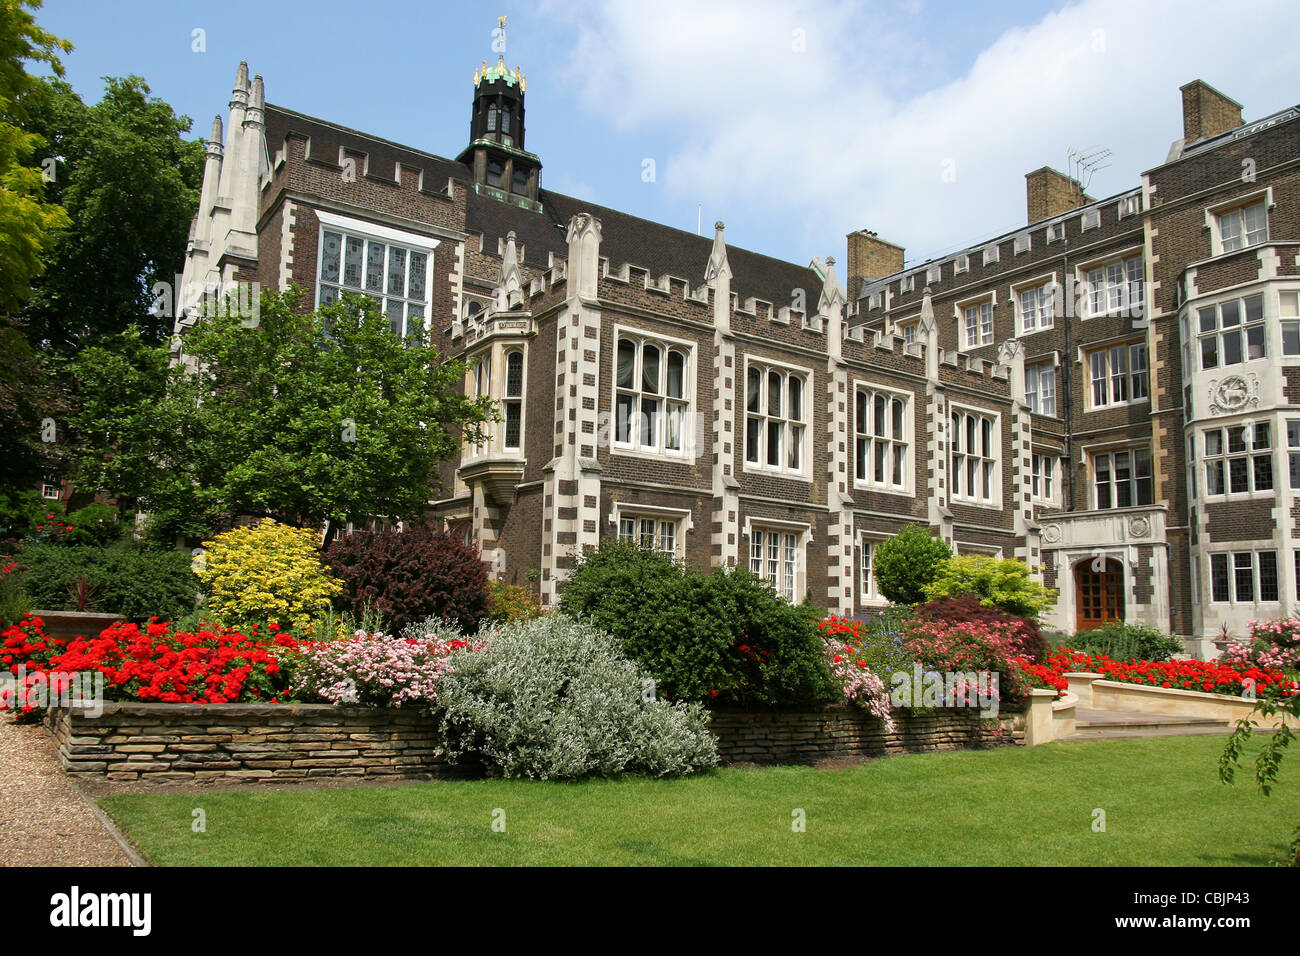 Middle Temple Hall, Inns of Court, London - Stock Image